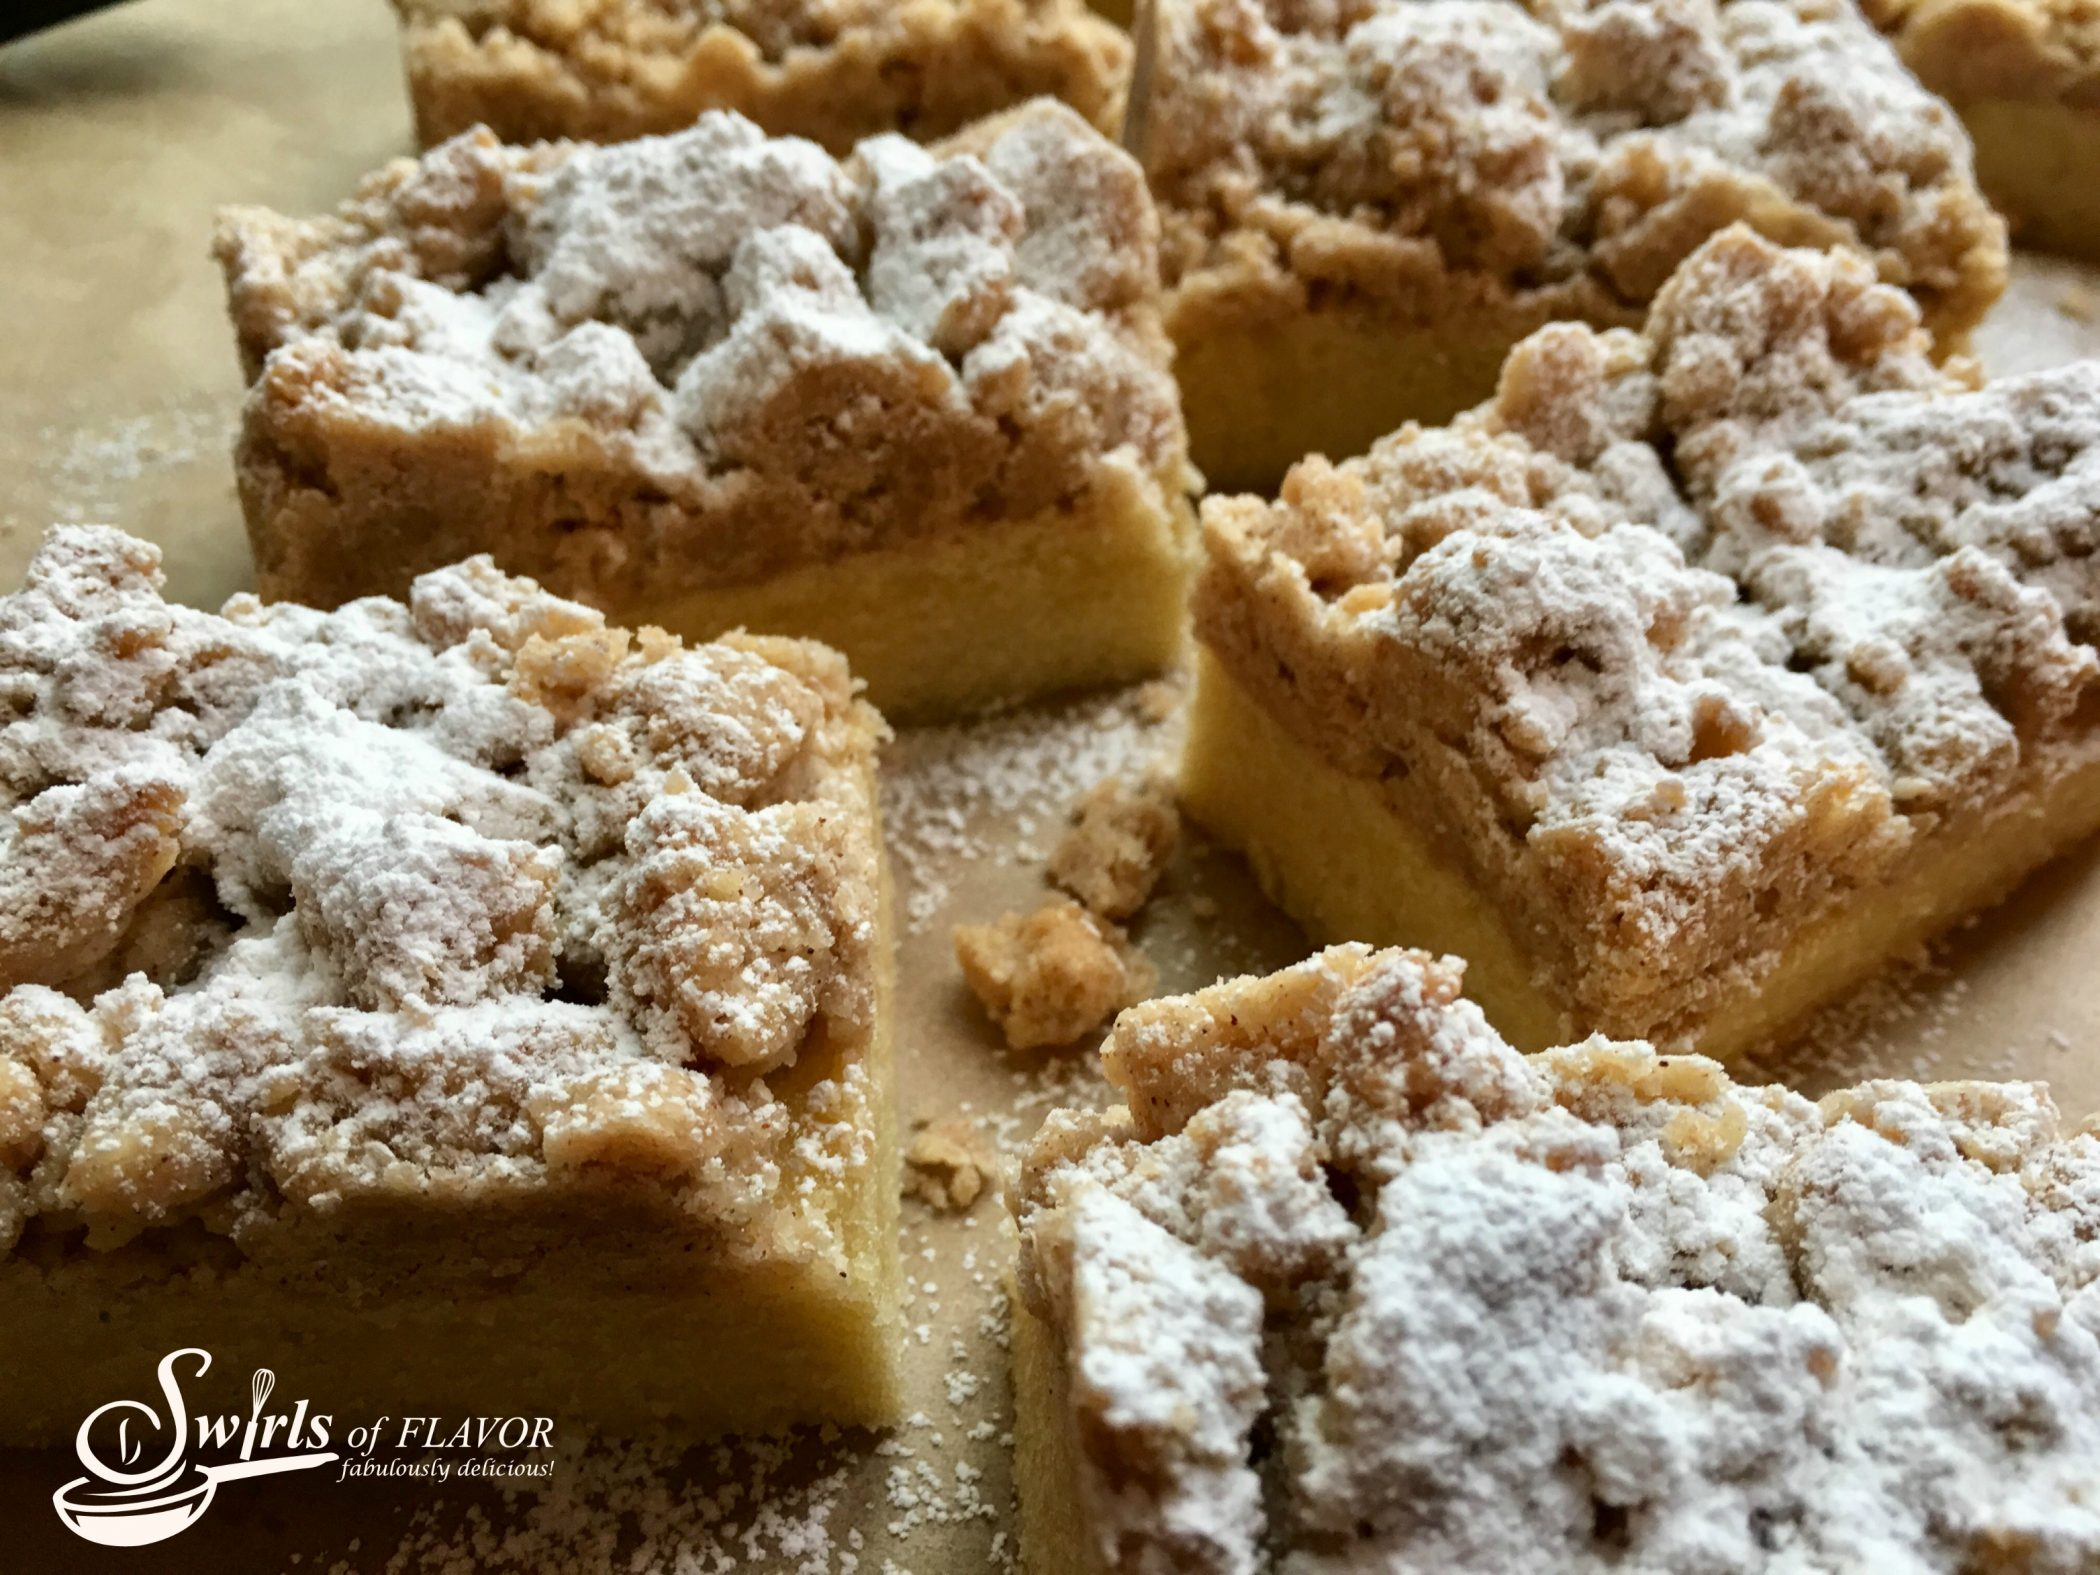 pieces of our crumb cake on parchment paper